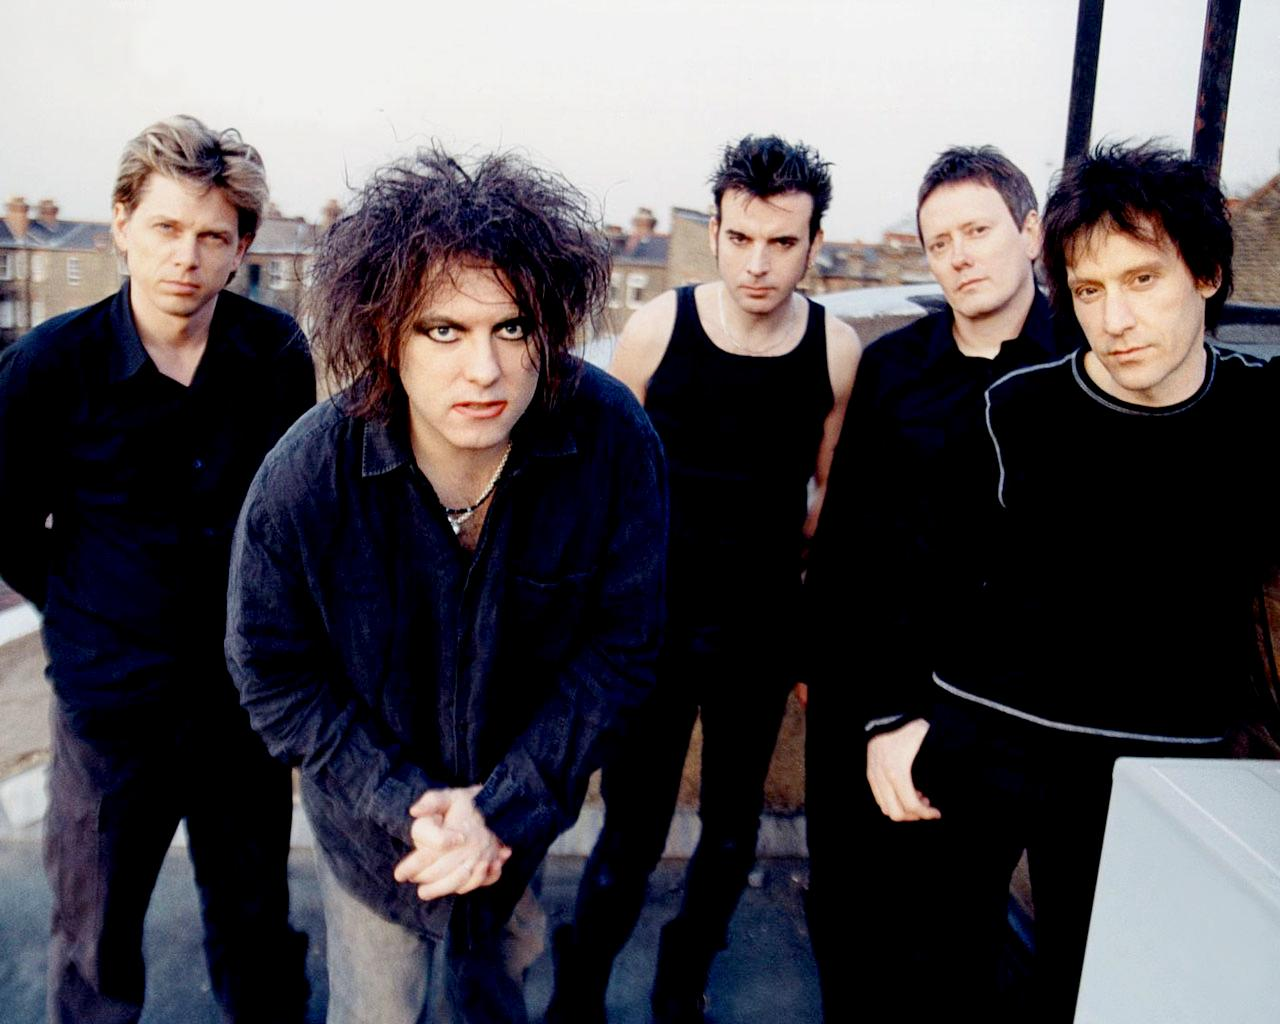 The Cure's 13th Album Postponed to 2008